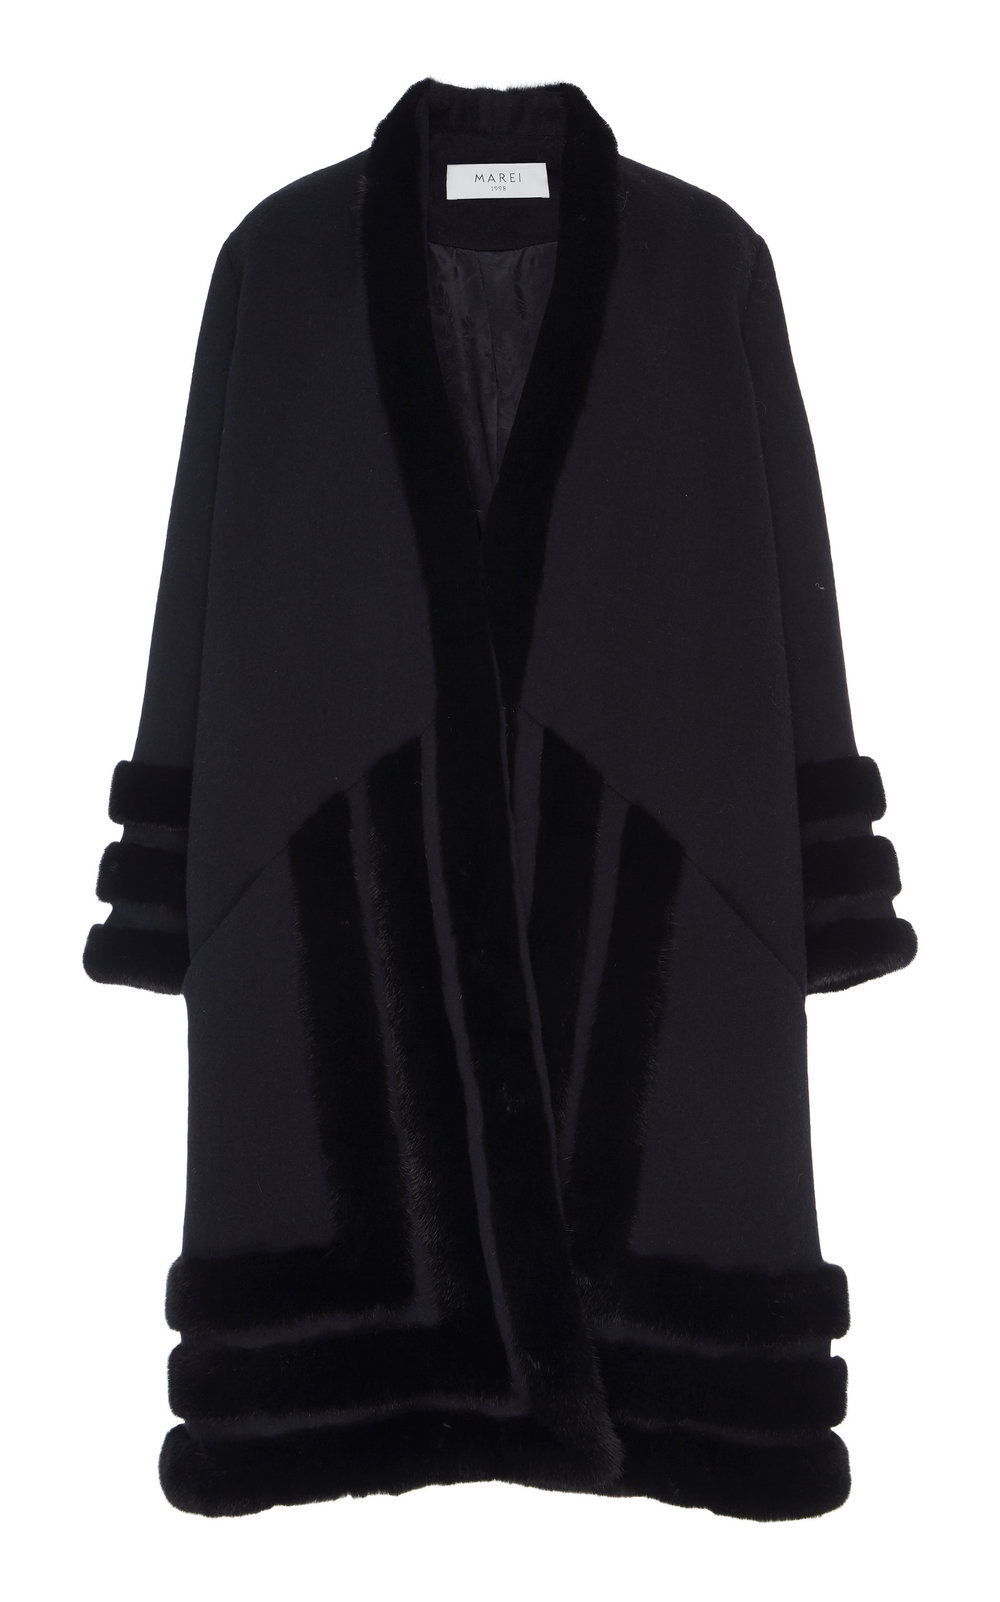 Wedelia Overcoat - BLACK  Cut in an oversized silhouette, enhanced by deep neckline and dropped shoulders, this coat is an ideal winter piece. Made from a sumptuous blend of Virgin Wool and Angora, it is incredibly soft to touch. Decorative textured Fur trim details add a sophisticated twist.